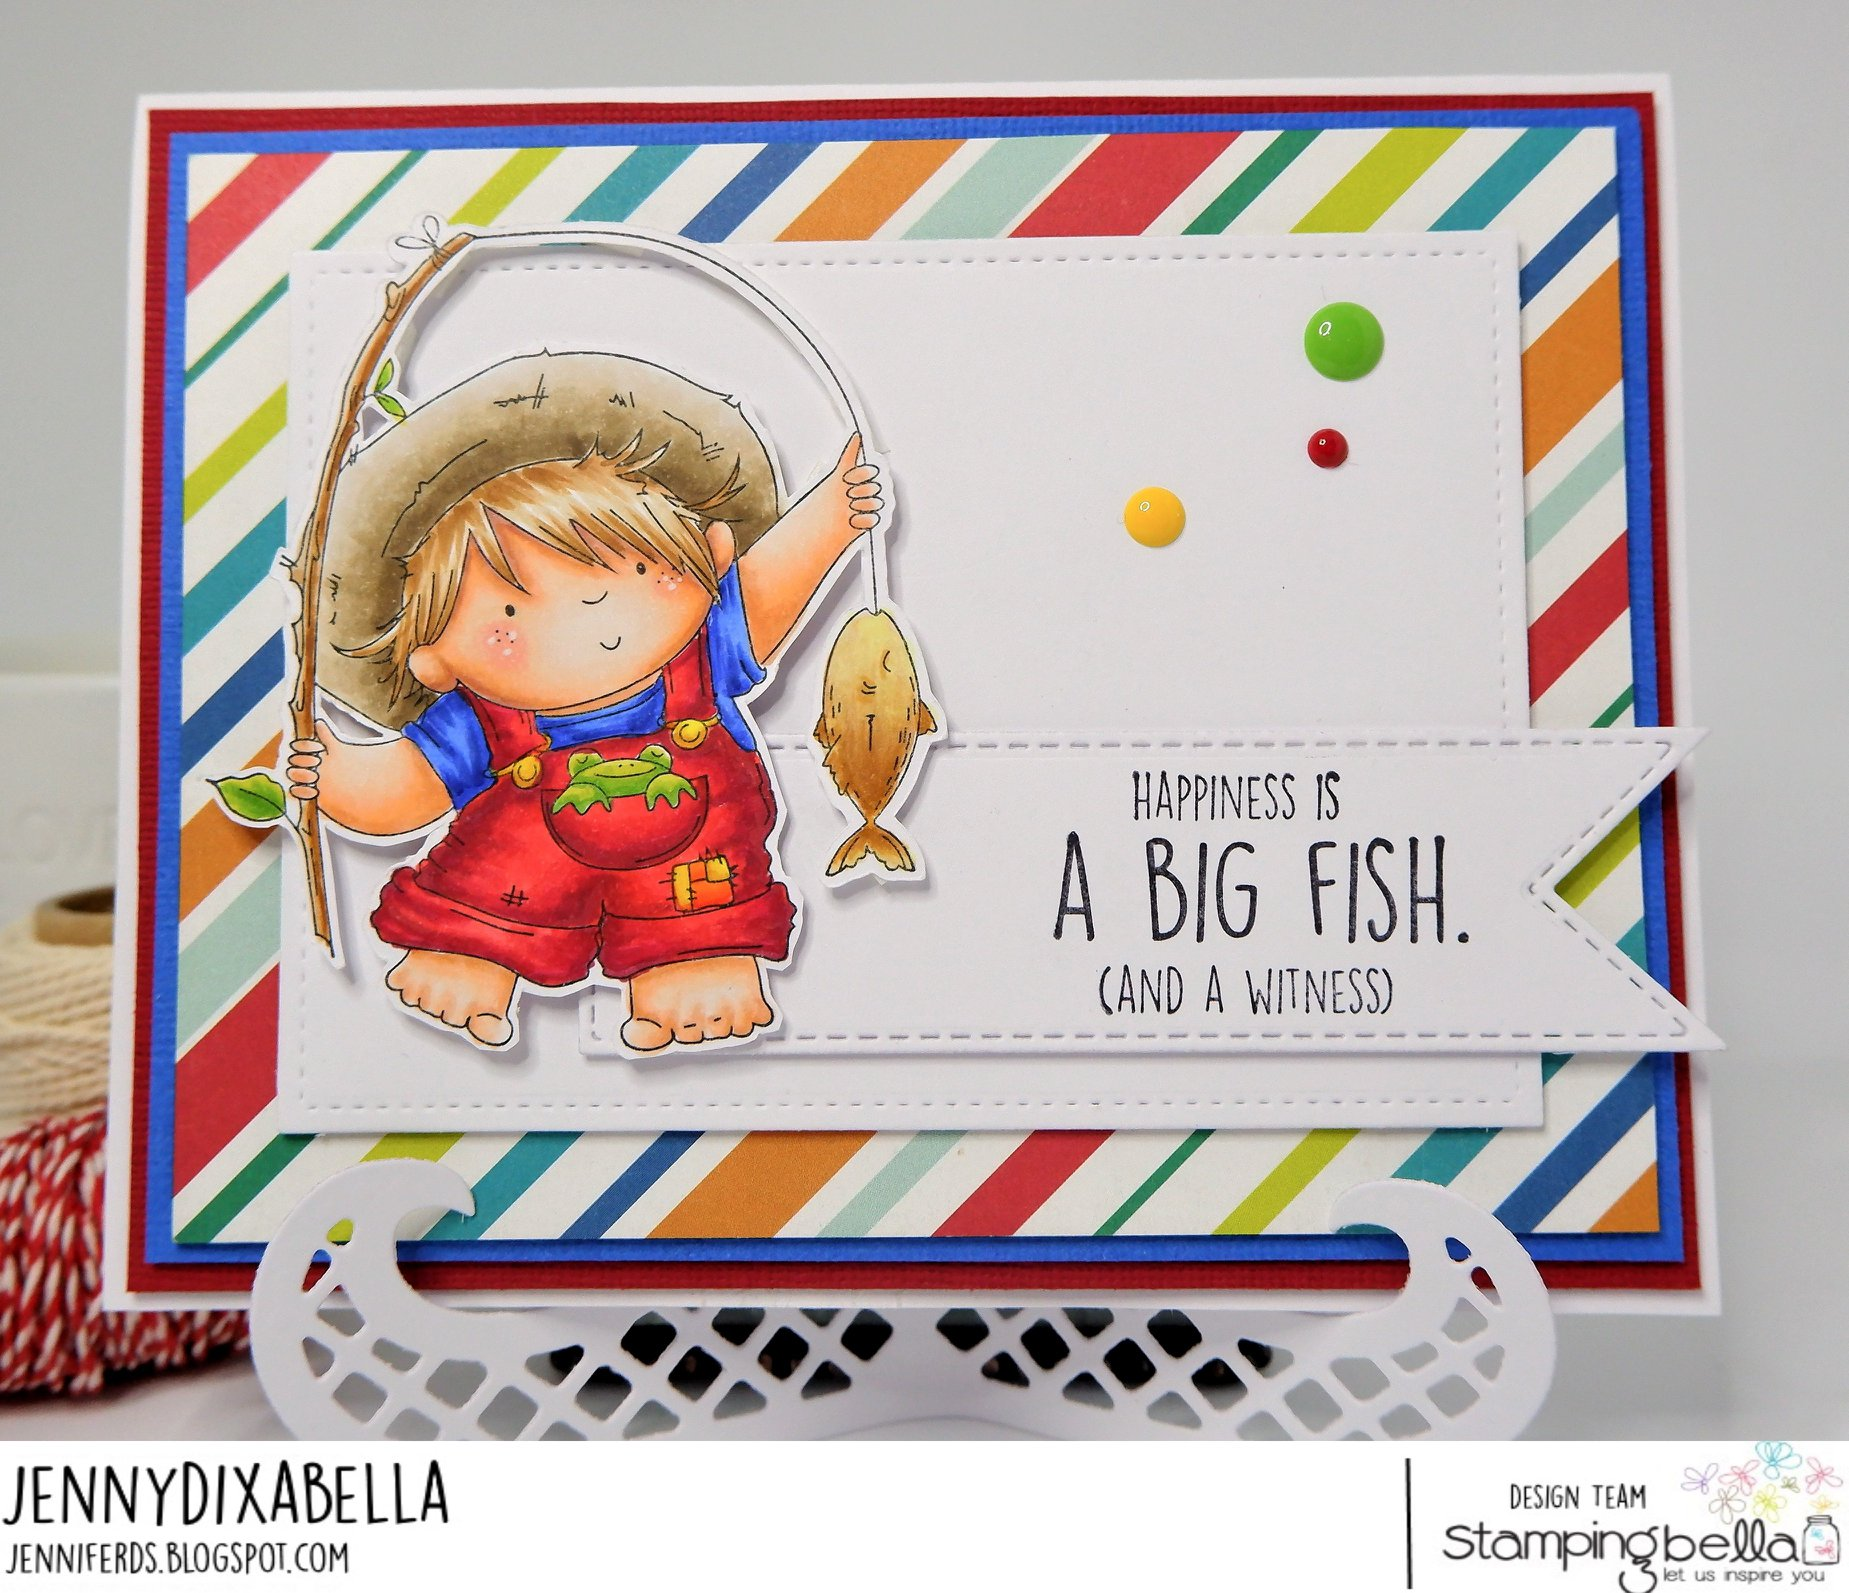 www.stampingbella.com.  RUBBER STAMP USED: FISHING SQUIDGY.  CARD BY Jenny Dix